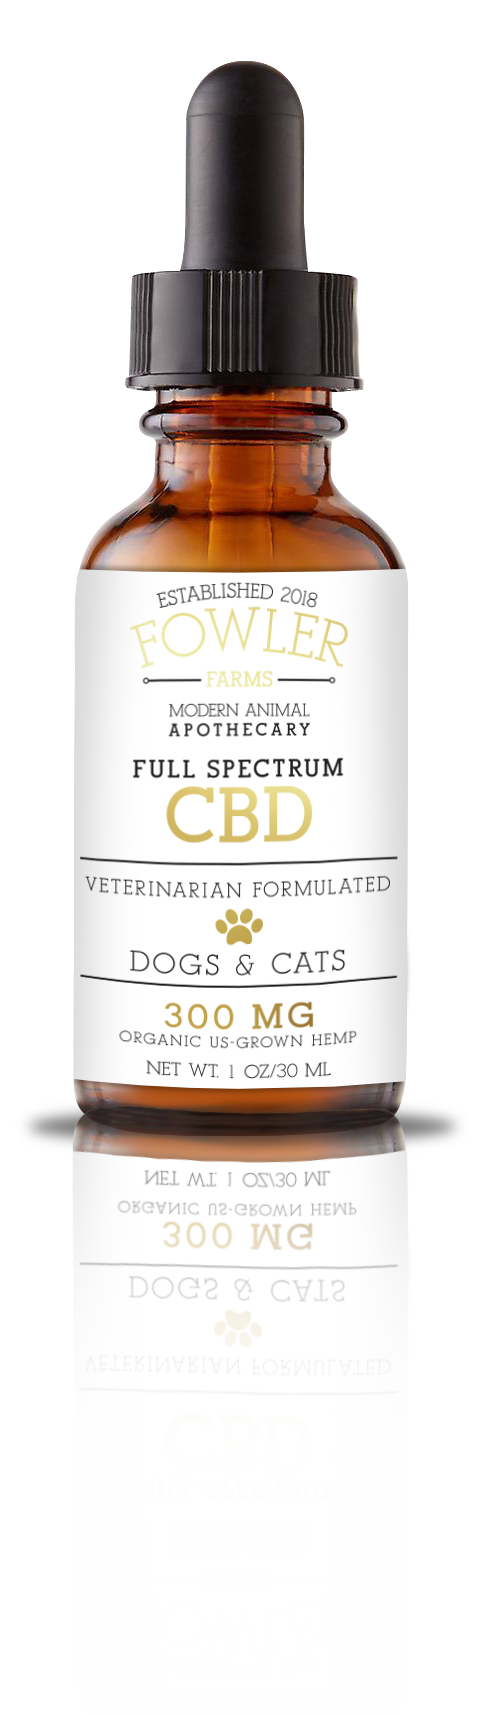 Full Spectrum CBD for Dogs Cats – 300 MG